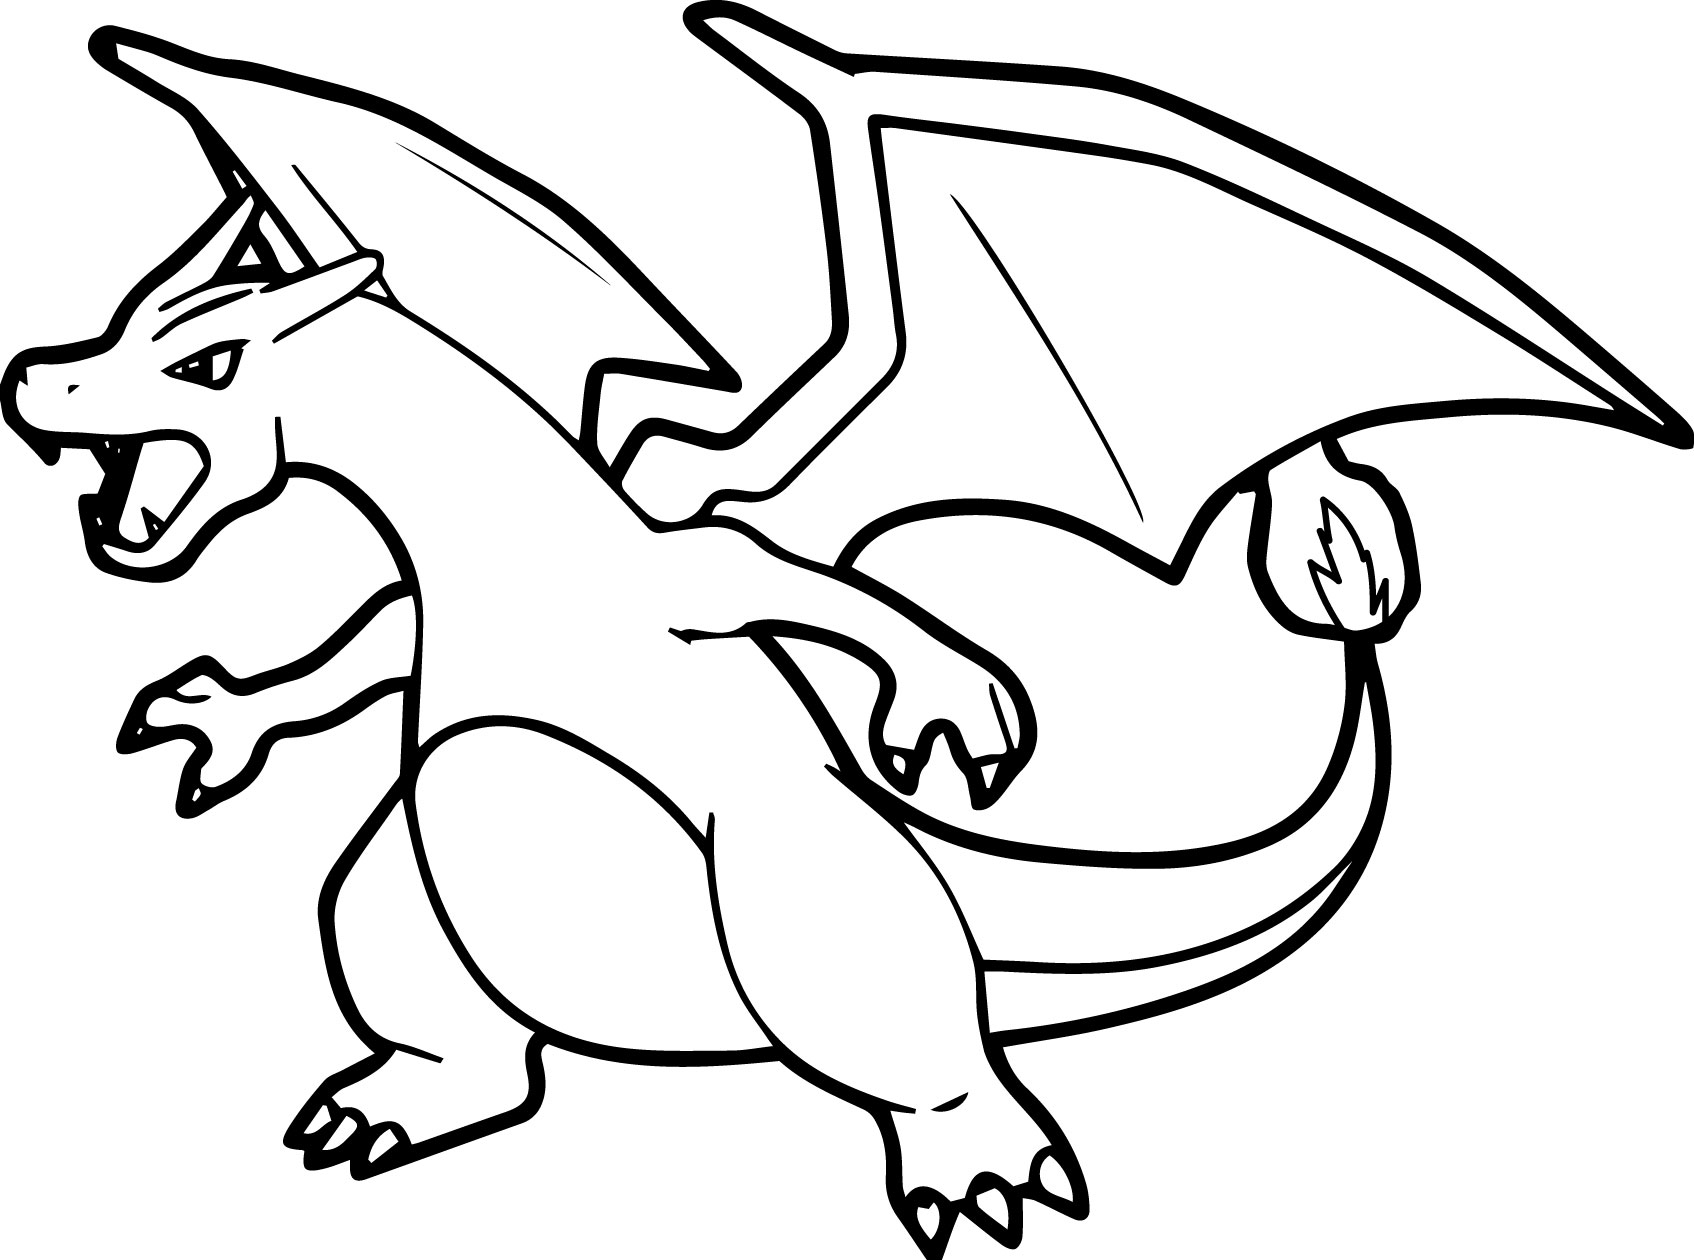 charizard coloring pages - photo#7